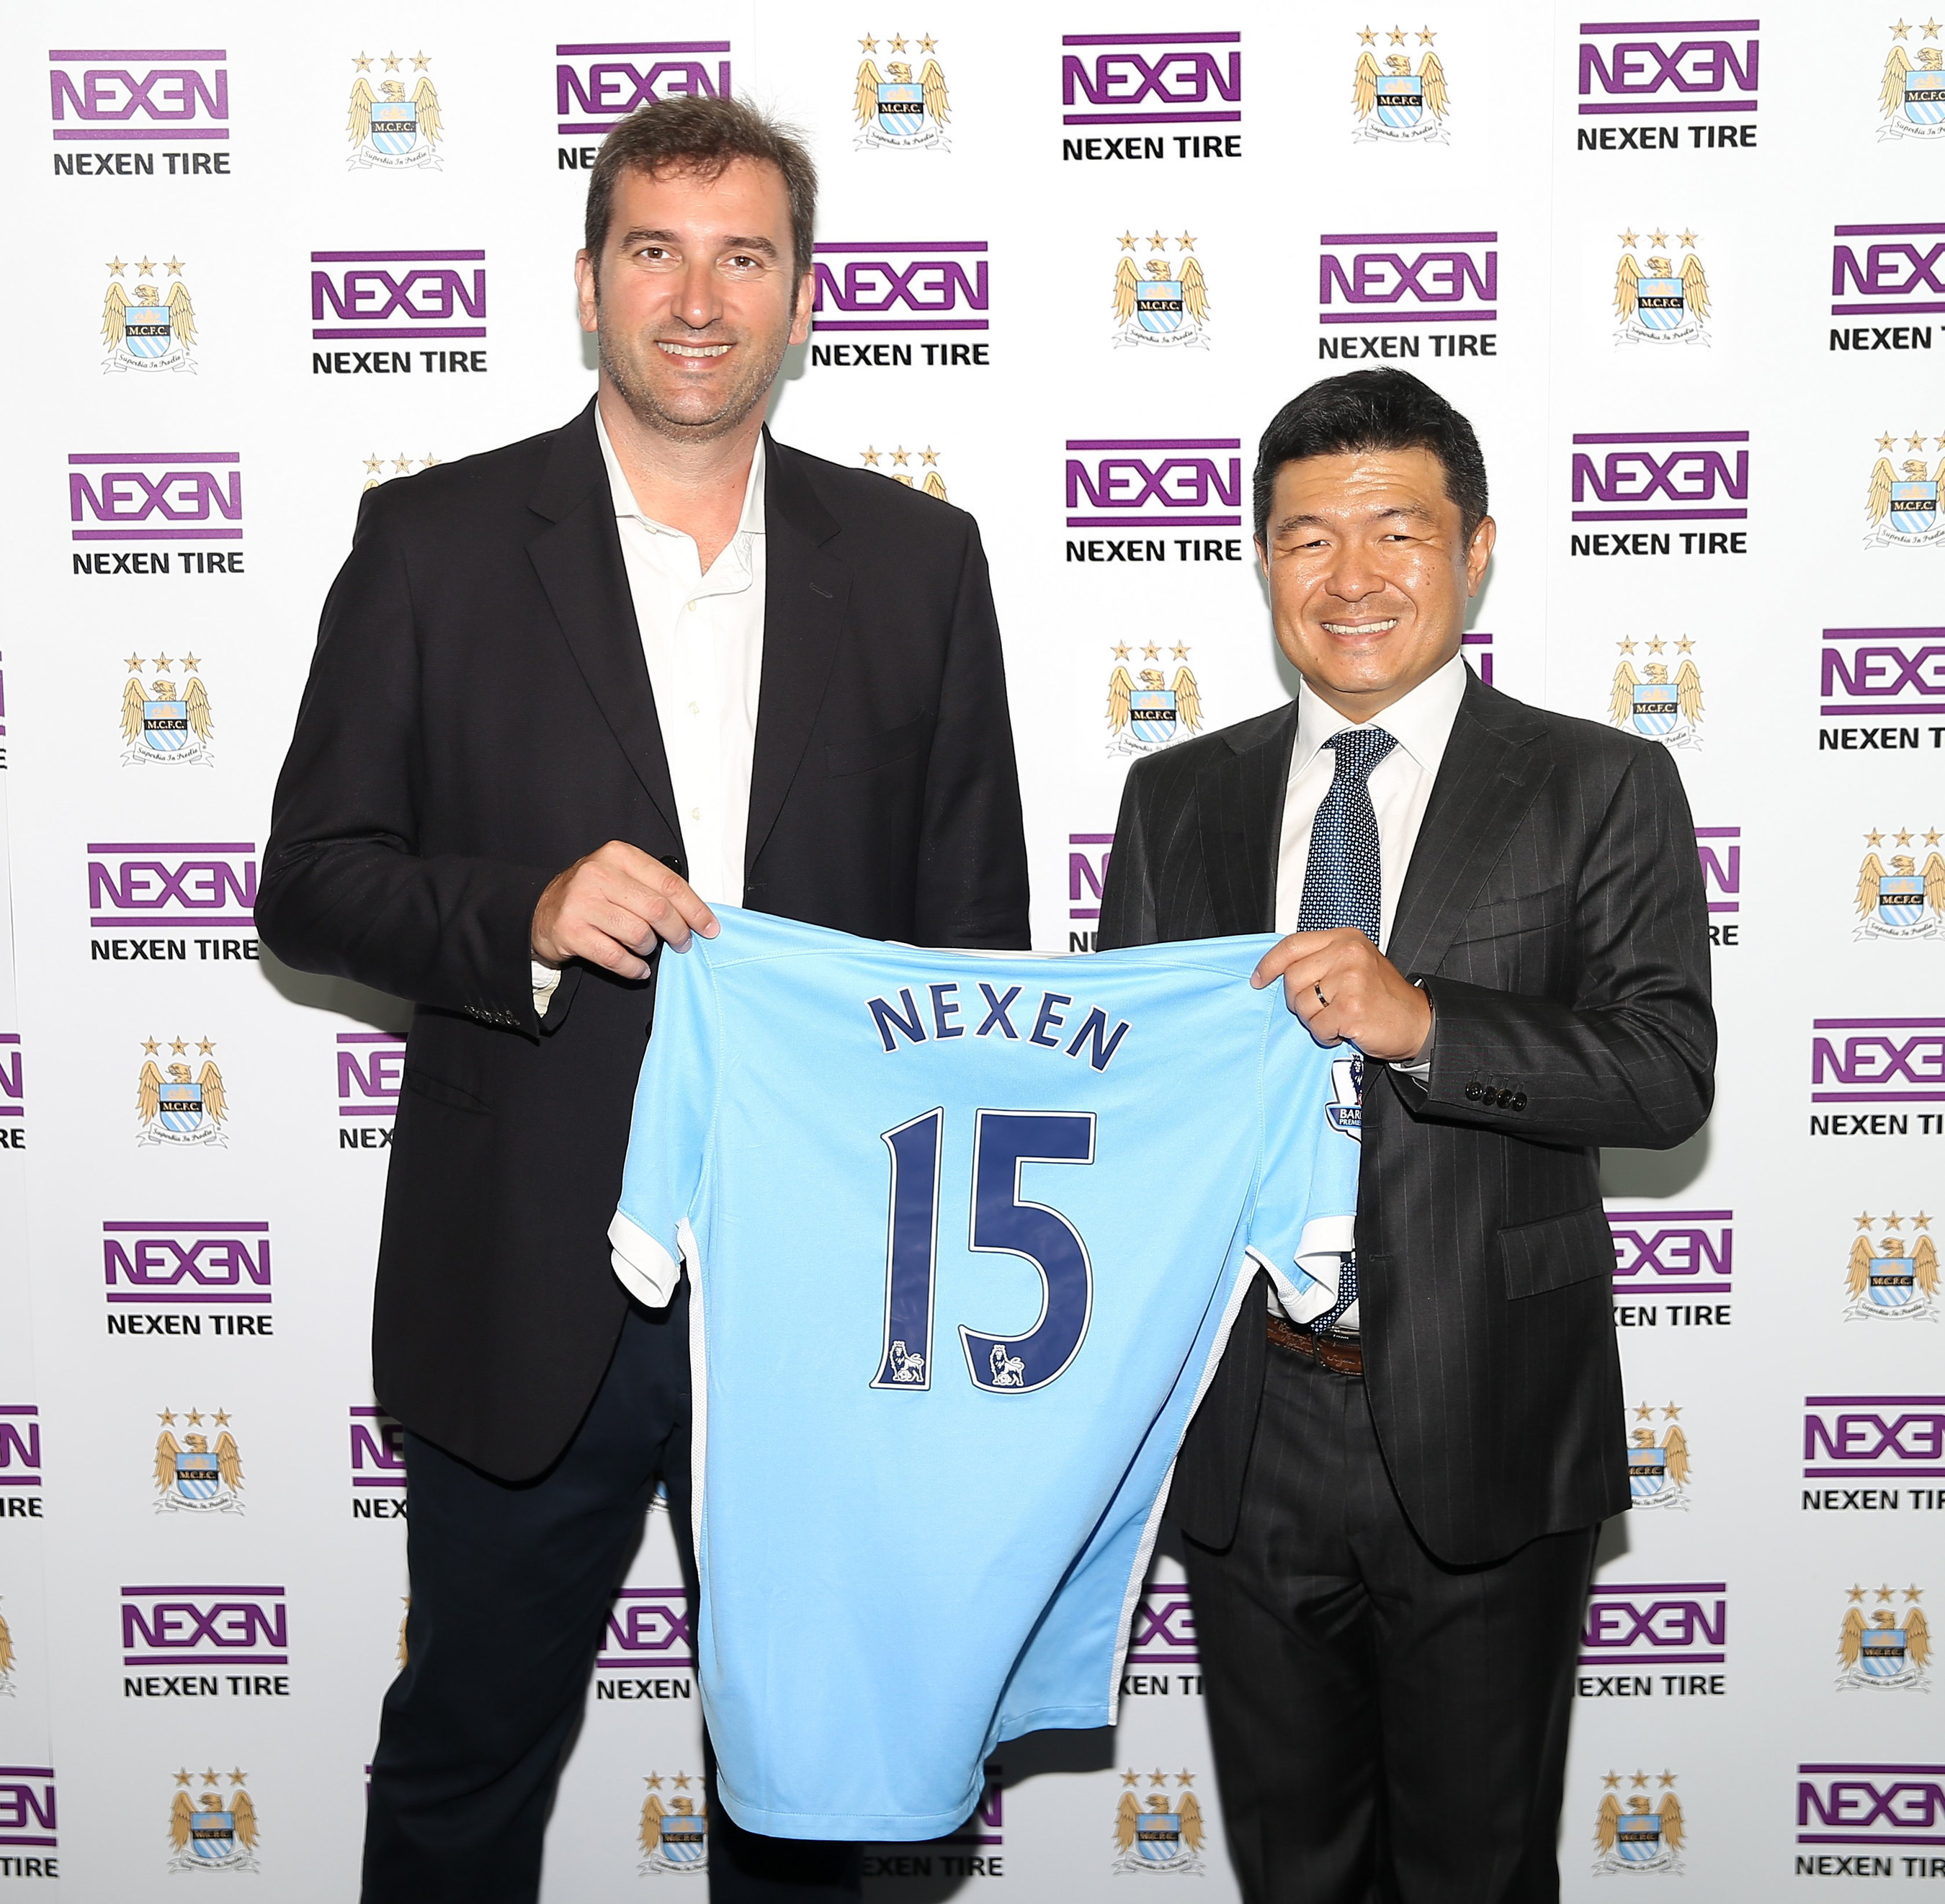 Nexen Tire établit un partenariat pneus officiel avec Manchester City Football Club